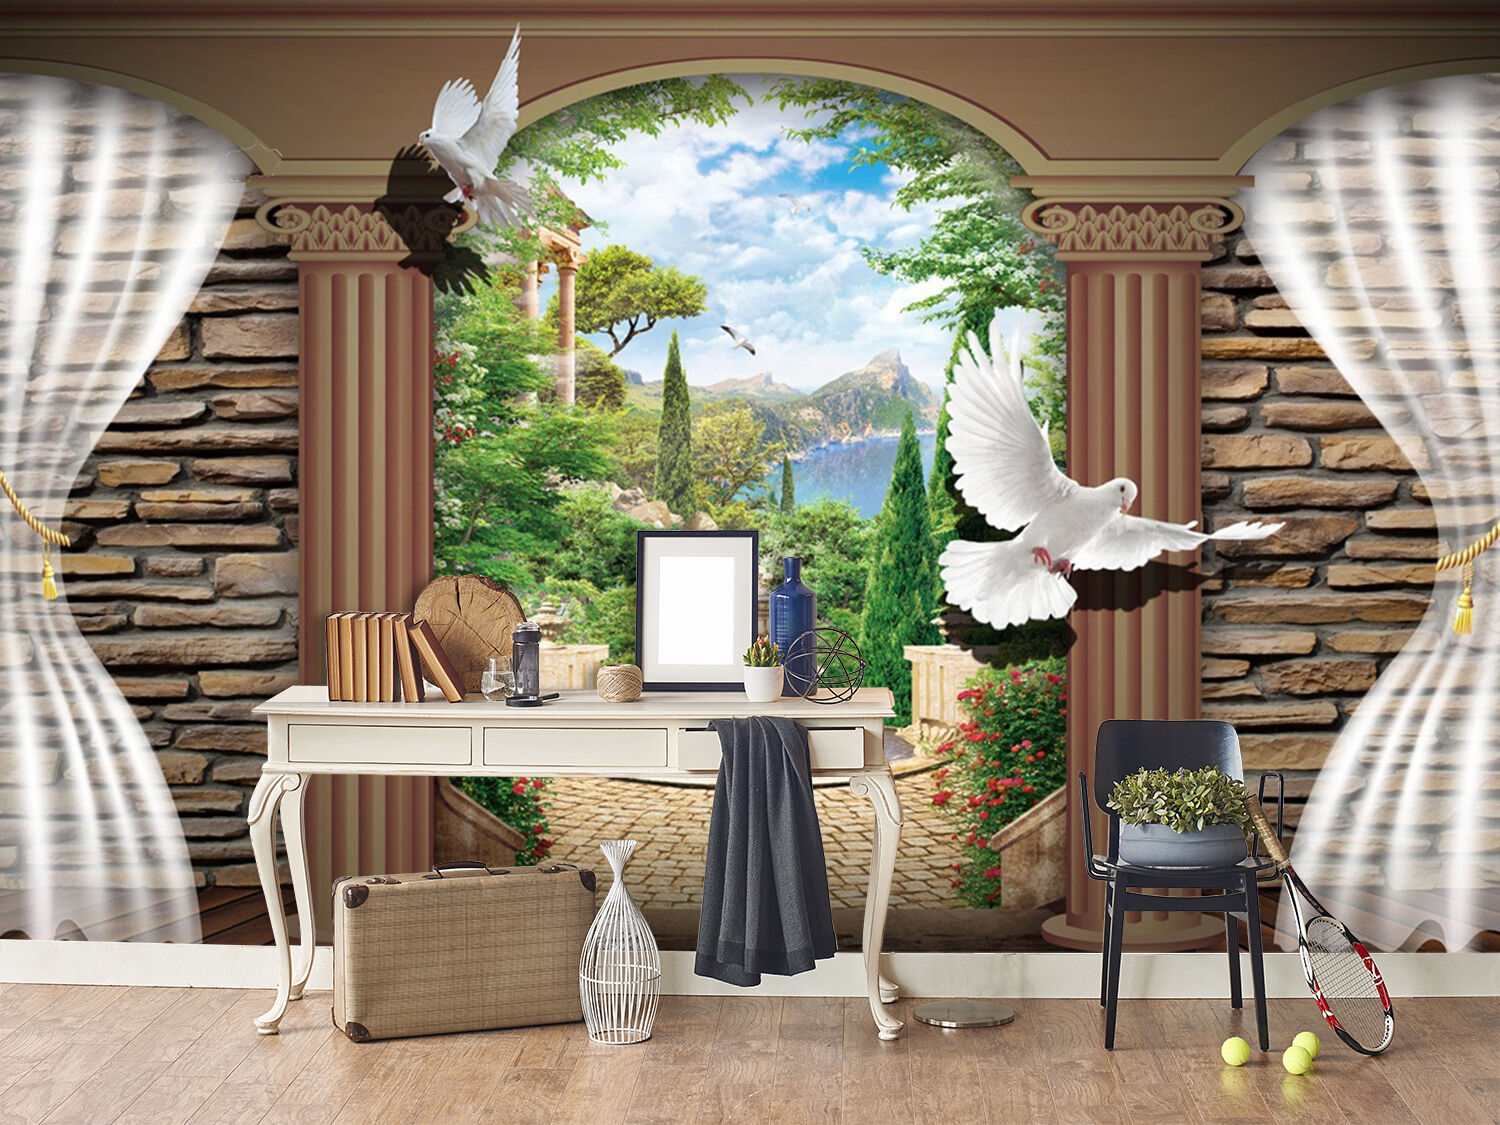 3D Wishing pool bird Wall Paper wall Print Decal Decal Decal Wall Deco Indoor wall Mural ff70ab